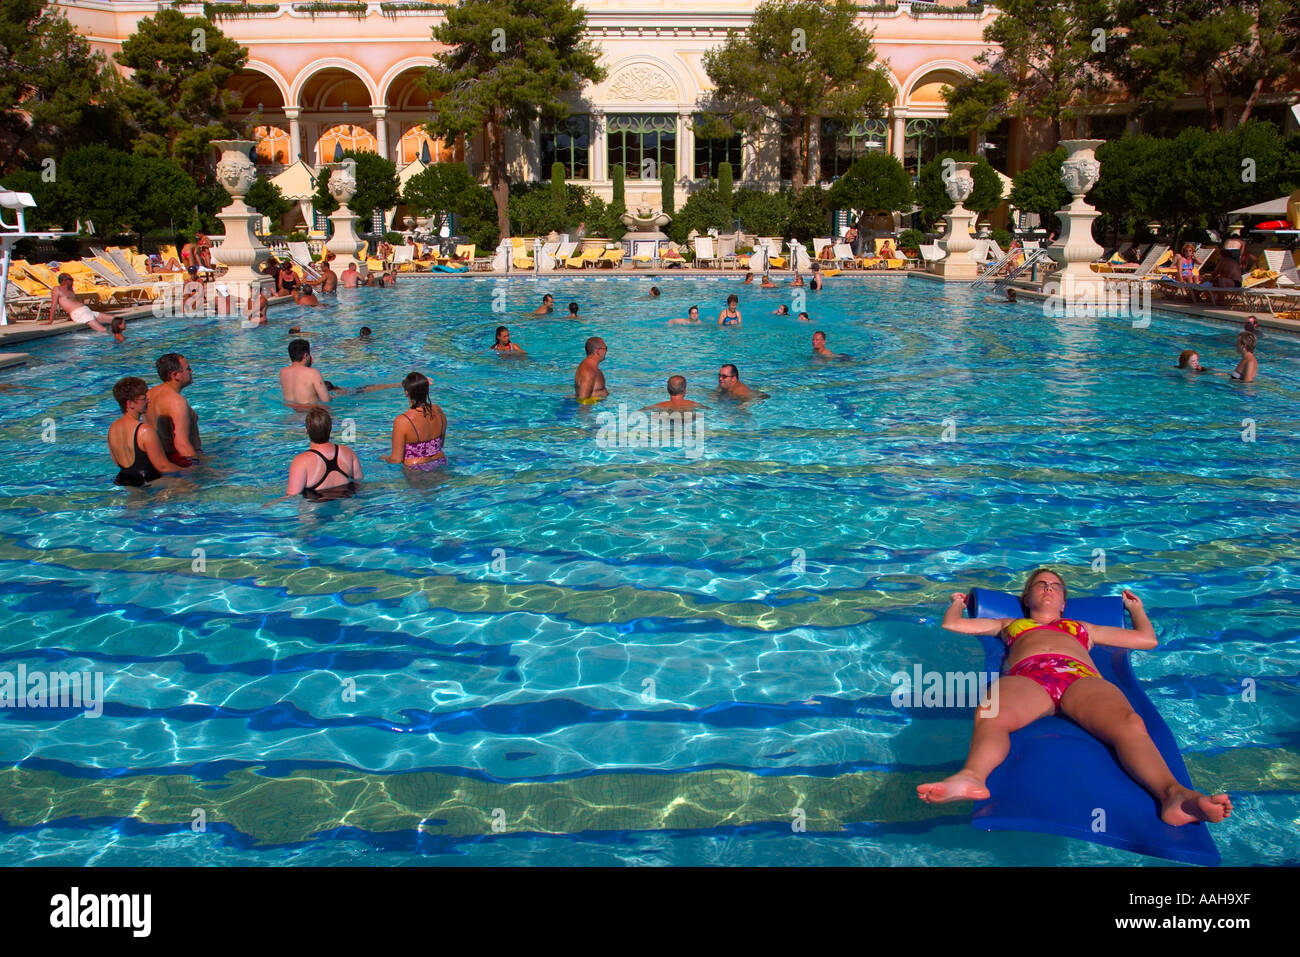 The Swimming Pools Of Bellagio Hotel Las Vegas Nevada Usa Stock Photo Royalty Free Image